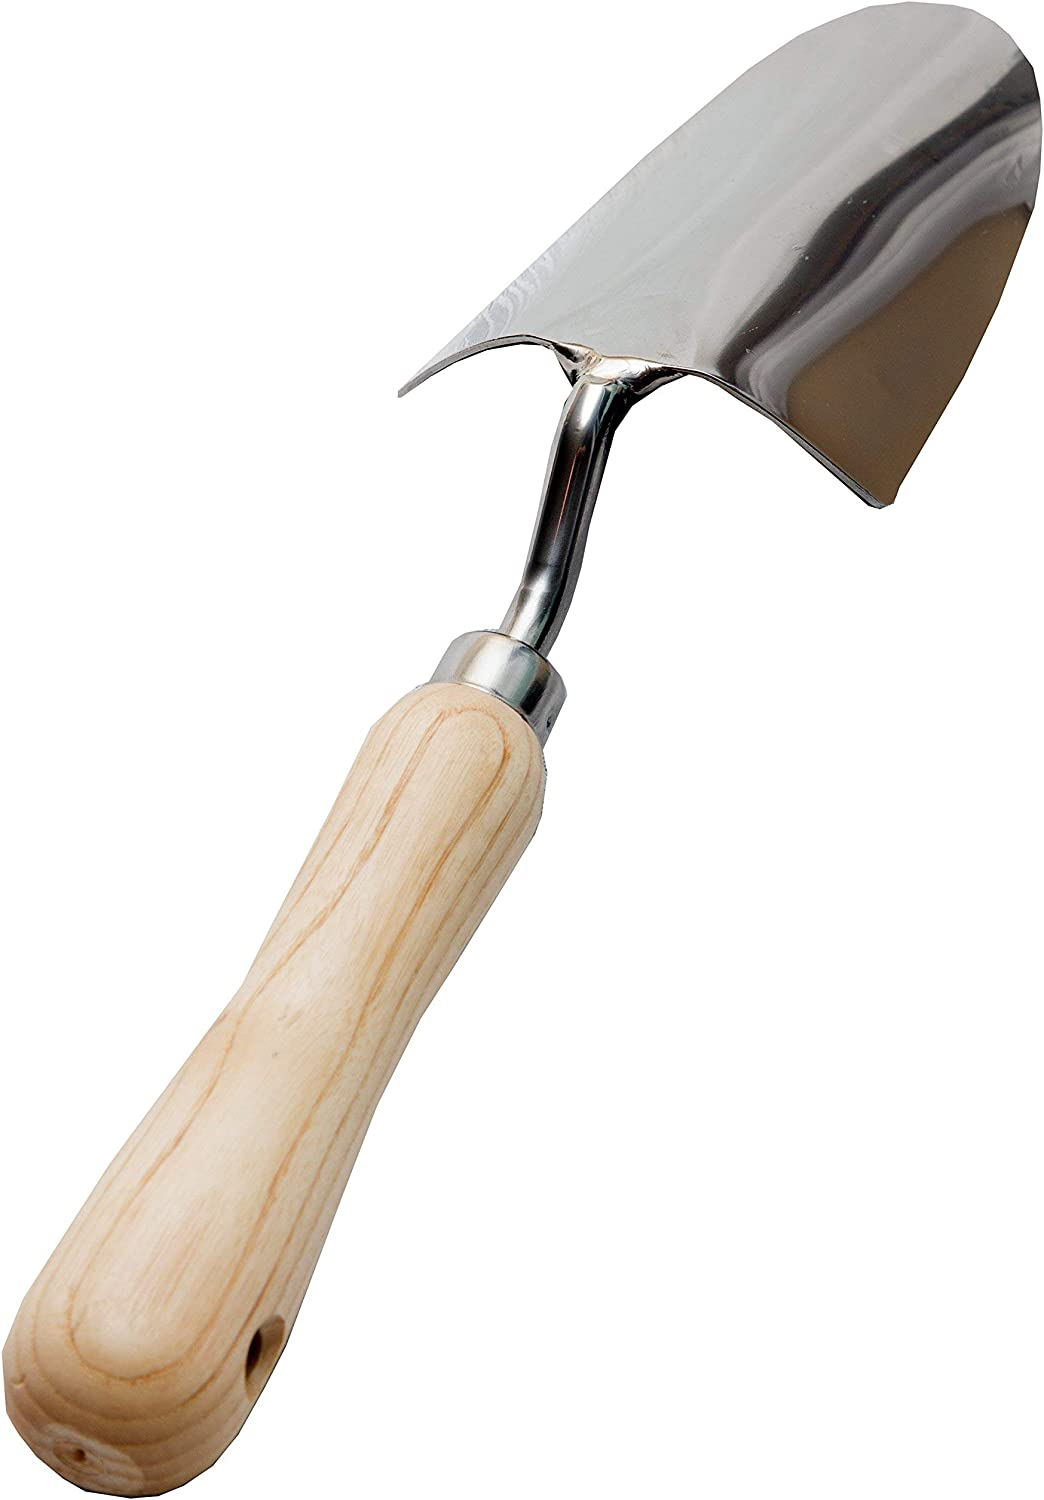 Shovel and Plant /& Transplanter Trowel Premium for Digging and Planting Heavy Duty Stainless Steel Smooth Vintage-Style Natural Ash Wood Handle and Leather Strap Dig Cates Garden Hand Trowel